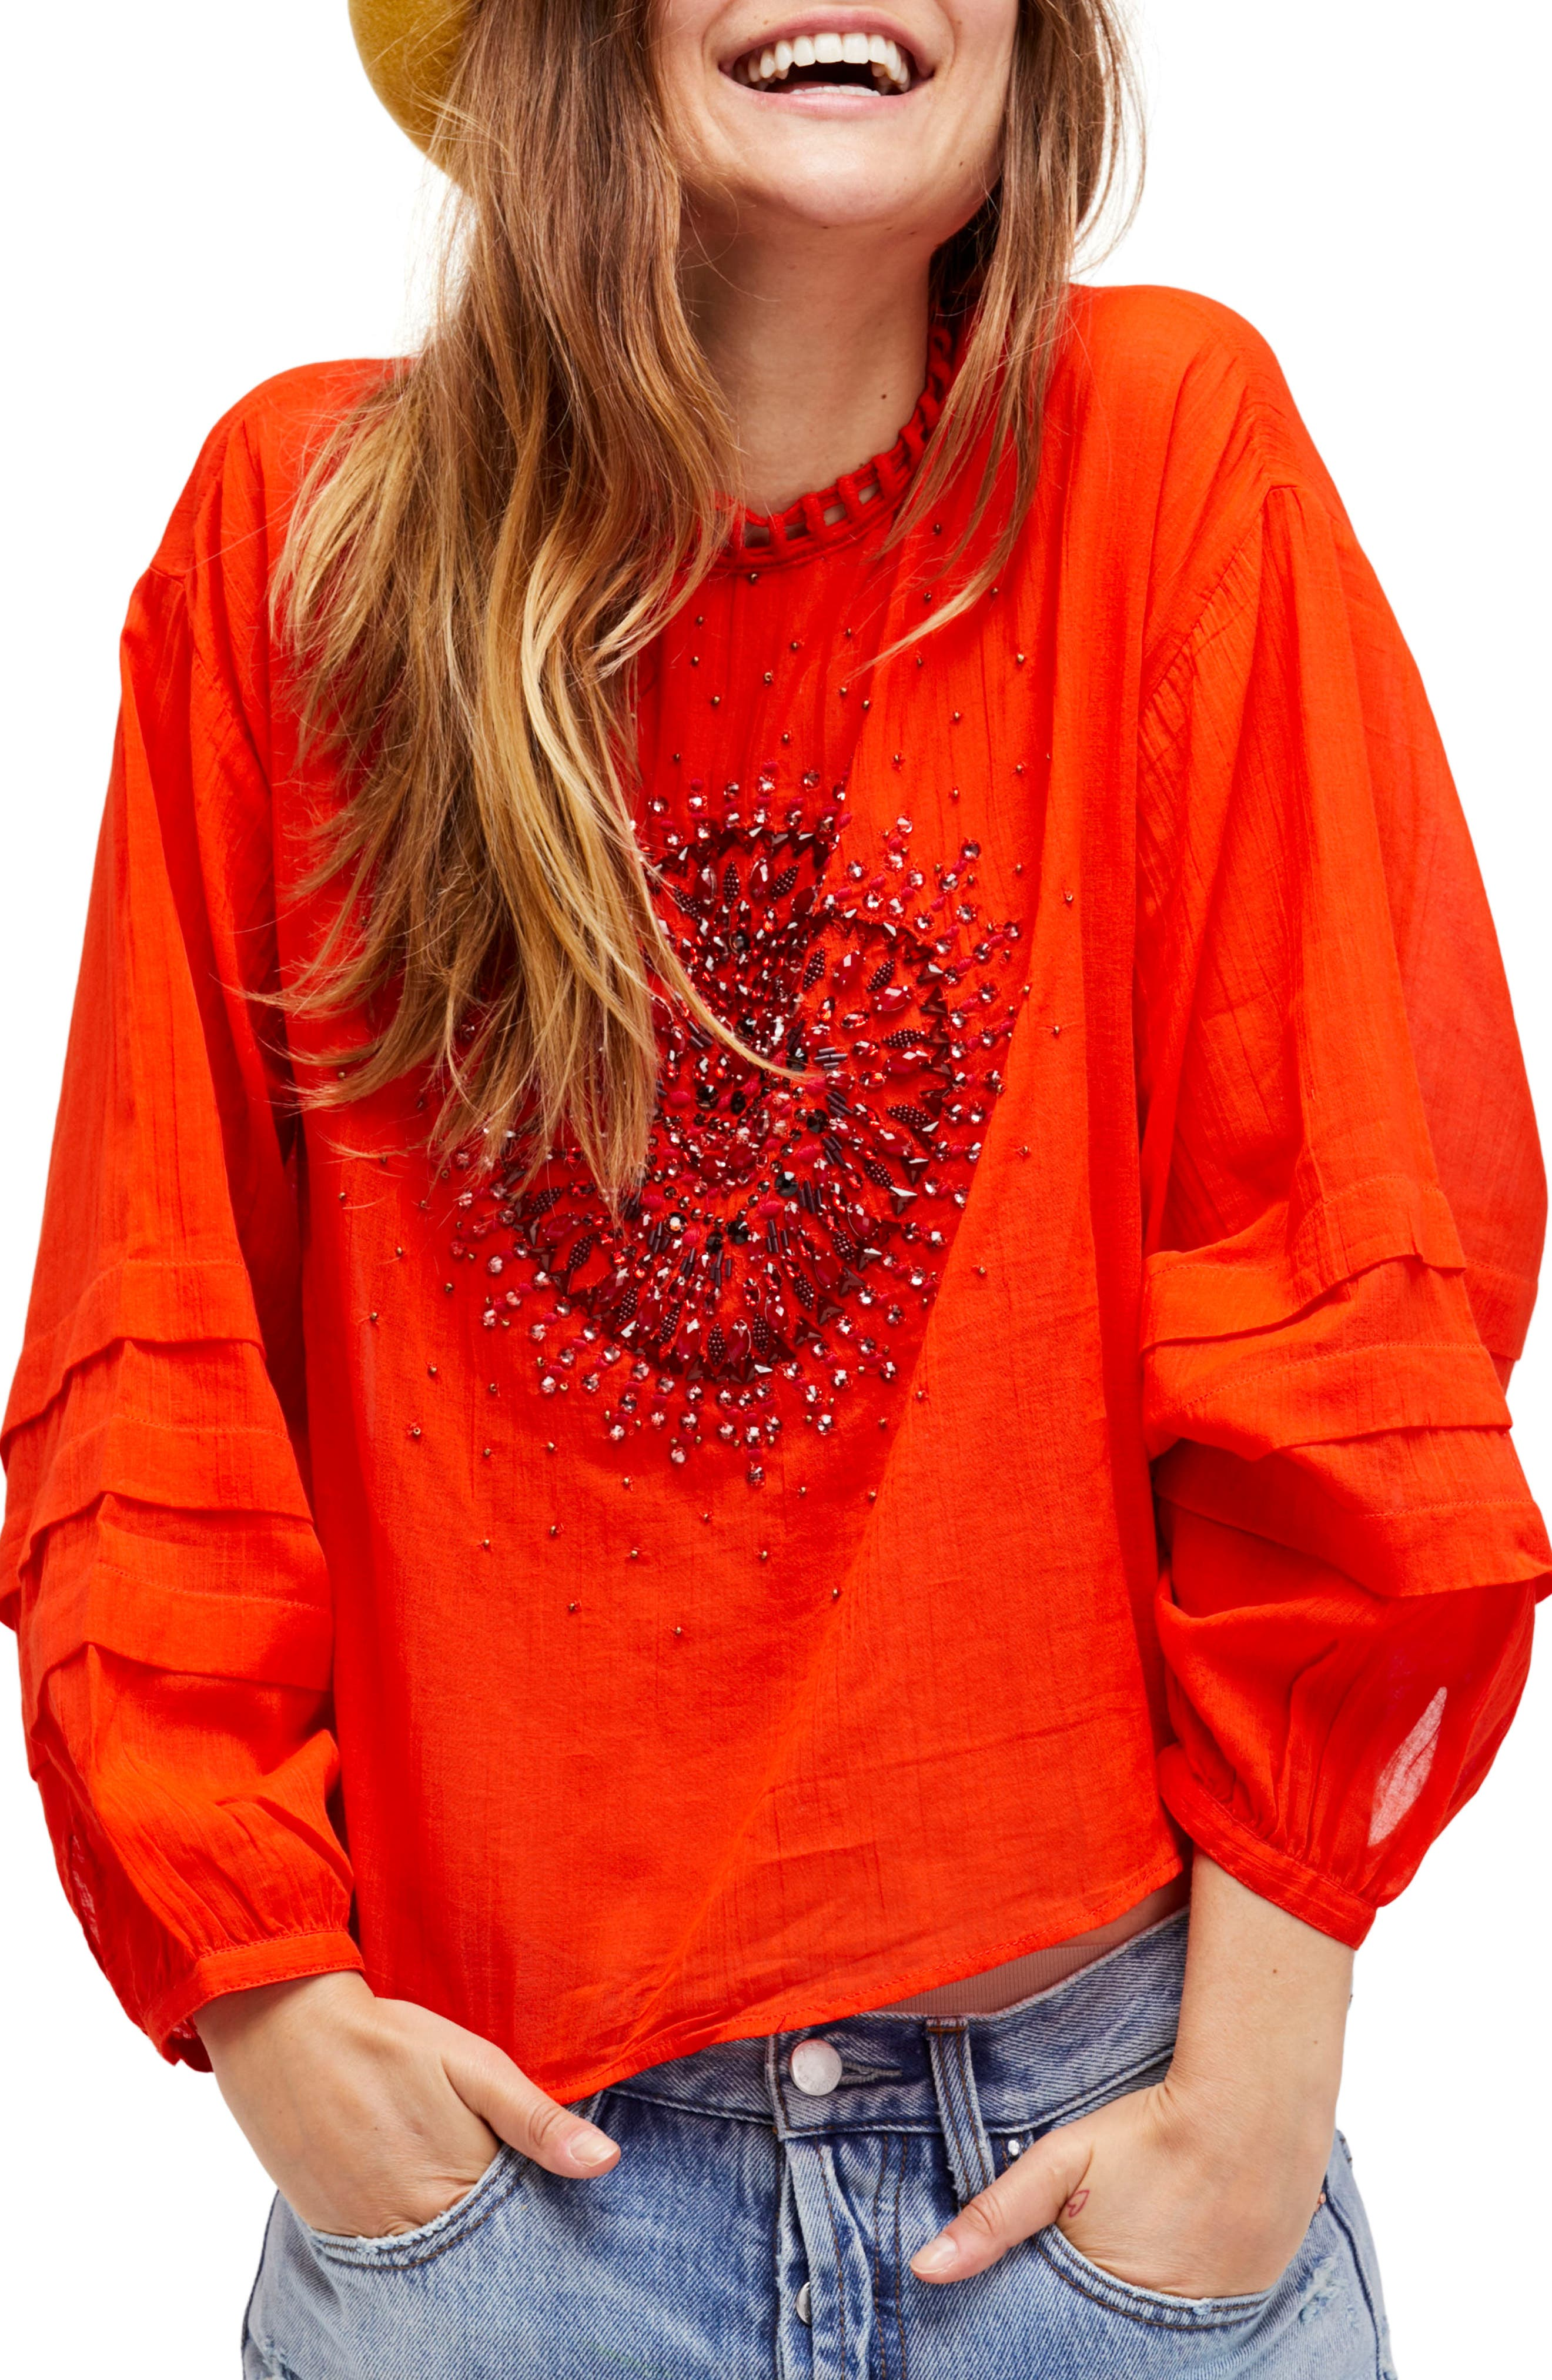 Heart of Gold Embellished Blouse,                             Main thumbnail 1, color,                             Red